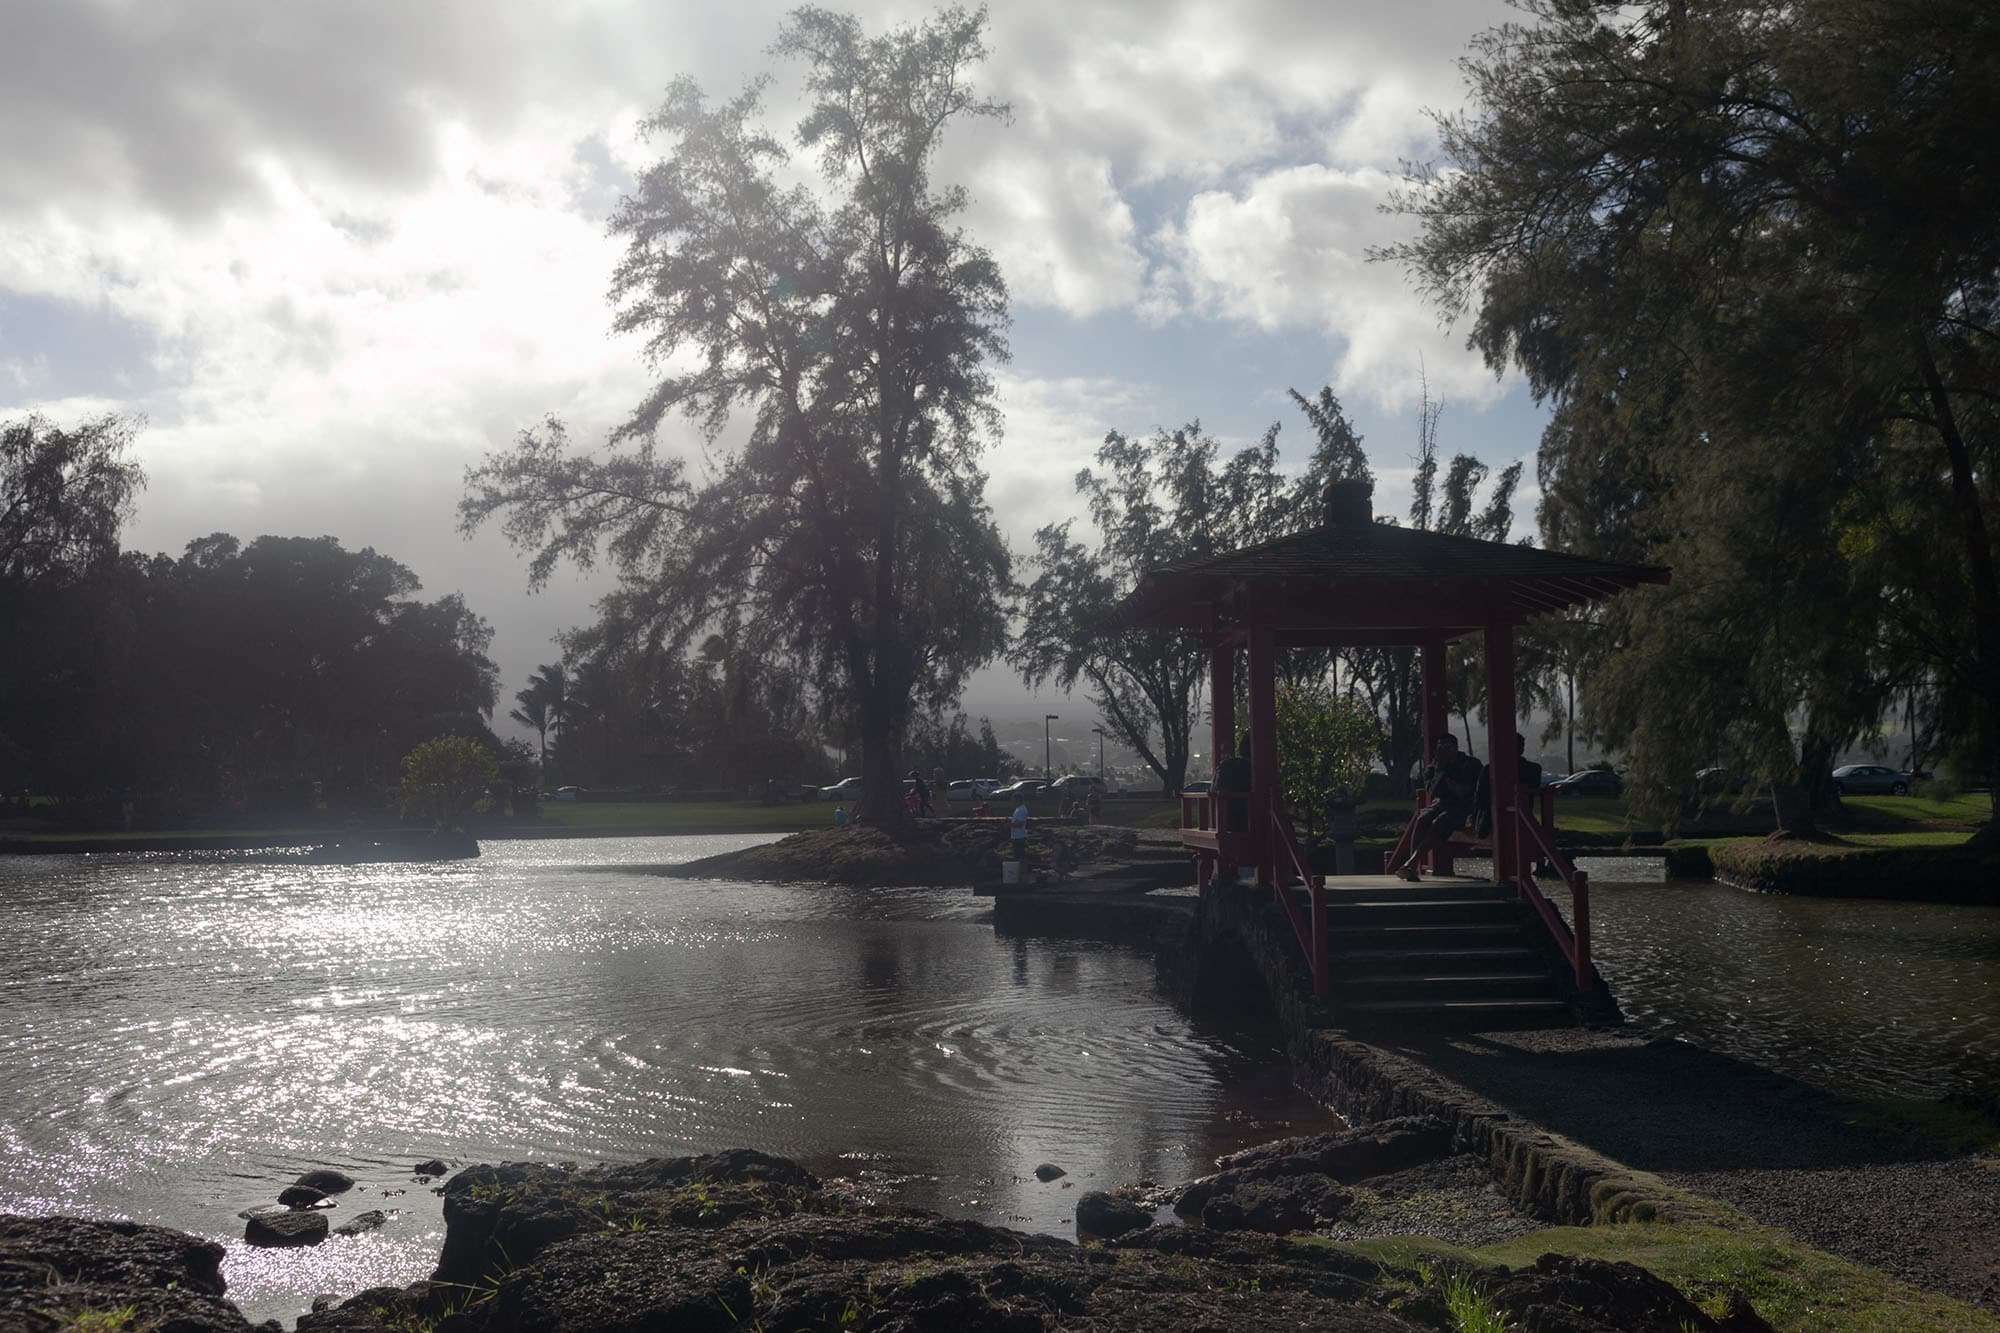 Liliʻuokalani Park and Gardens. Japanese gardens in Hilo, Big Island, Hawaii. Things to do in Hilo, Hawaii.